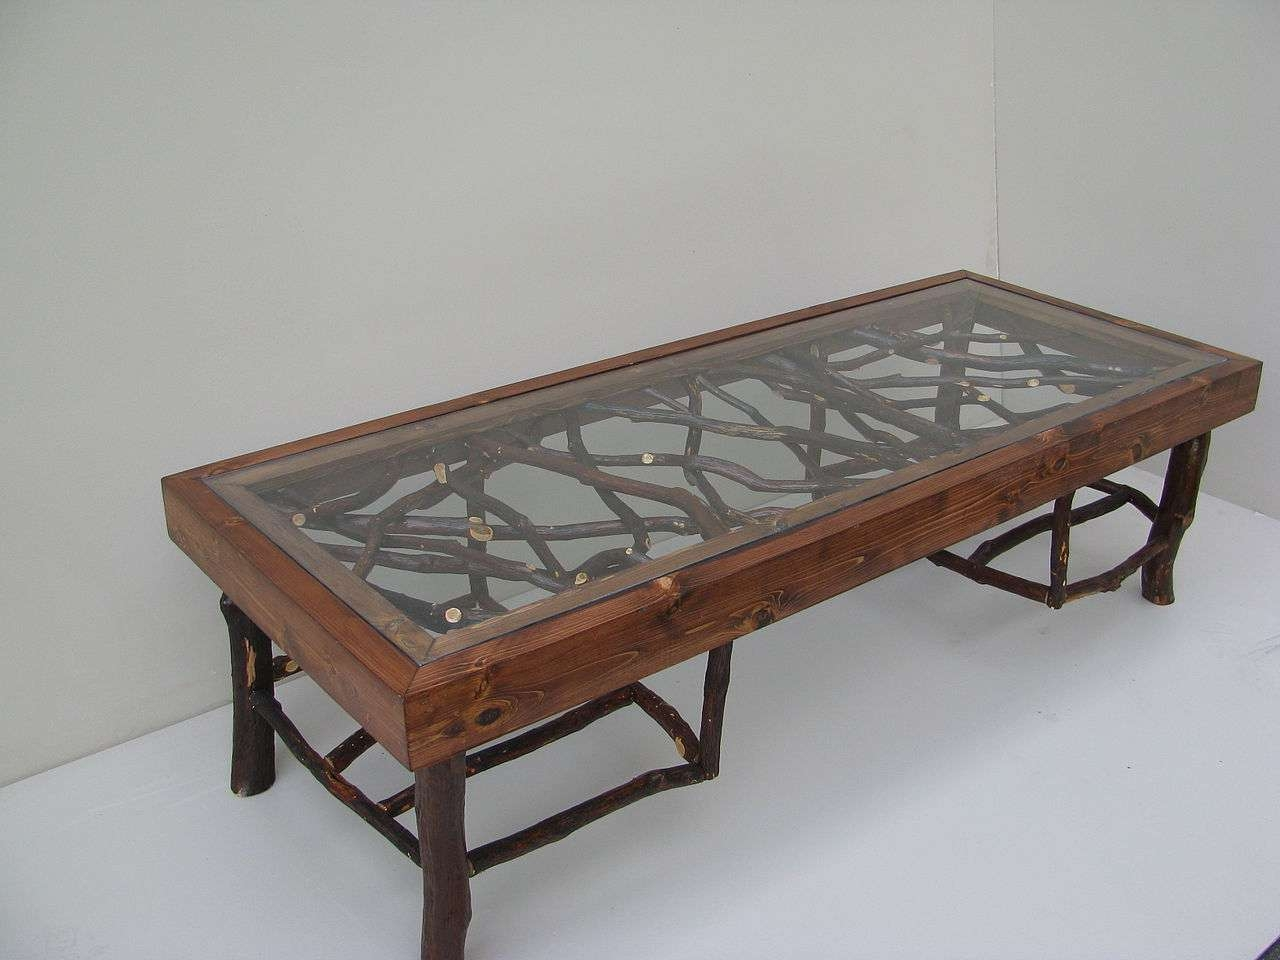 File:rustic Coffee Table – Wikimedia Commons For Most Recent Antique Rustic Coffee Tables (View 18 of 20)